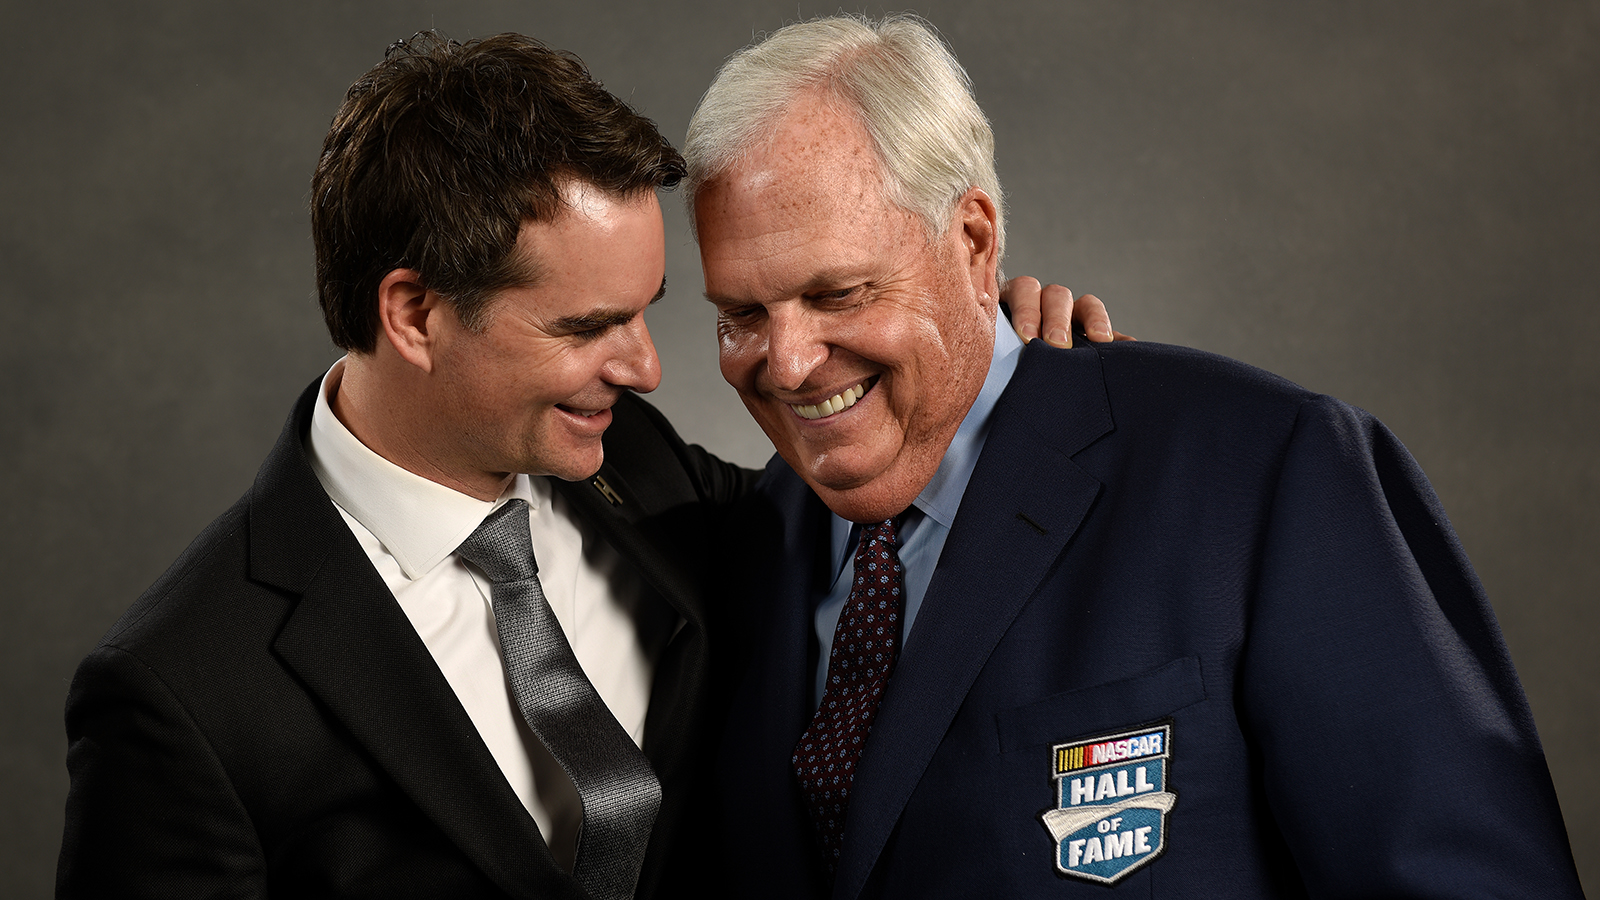 CHARLOTTE, NC - JANUARY 20:  NASCAR Hall of Fame inductee Rick Hendrick(right) and former NASCAR driver Jeff Gordon share a moment prior to the NASCAR Hall of Fame Class of 2017 Induction Ceremony at NASCAR Hall of Fame on January 20, 2017 in Charlotte, North Carolina.  (Photo by Jared C. Tilton/Getty Images)